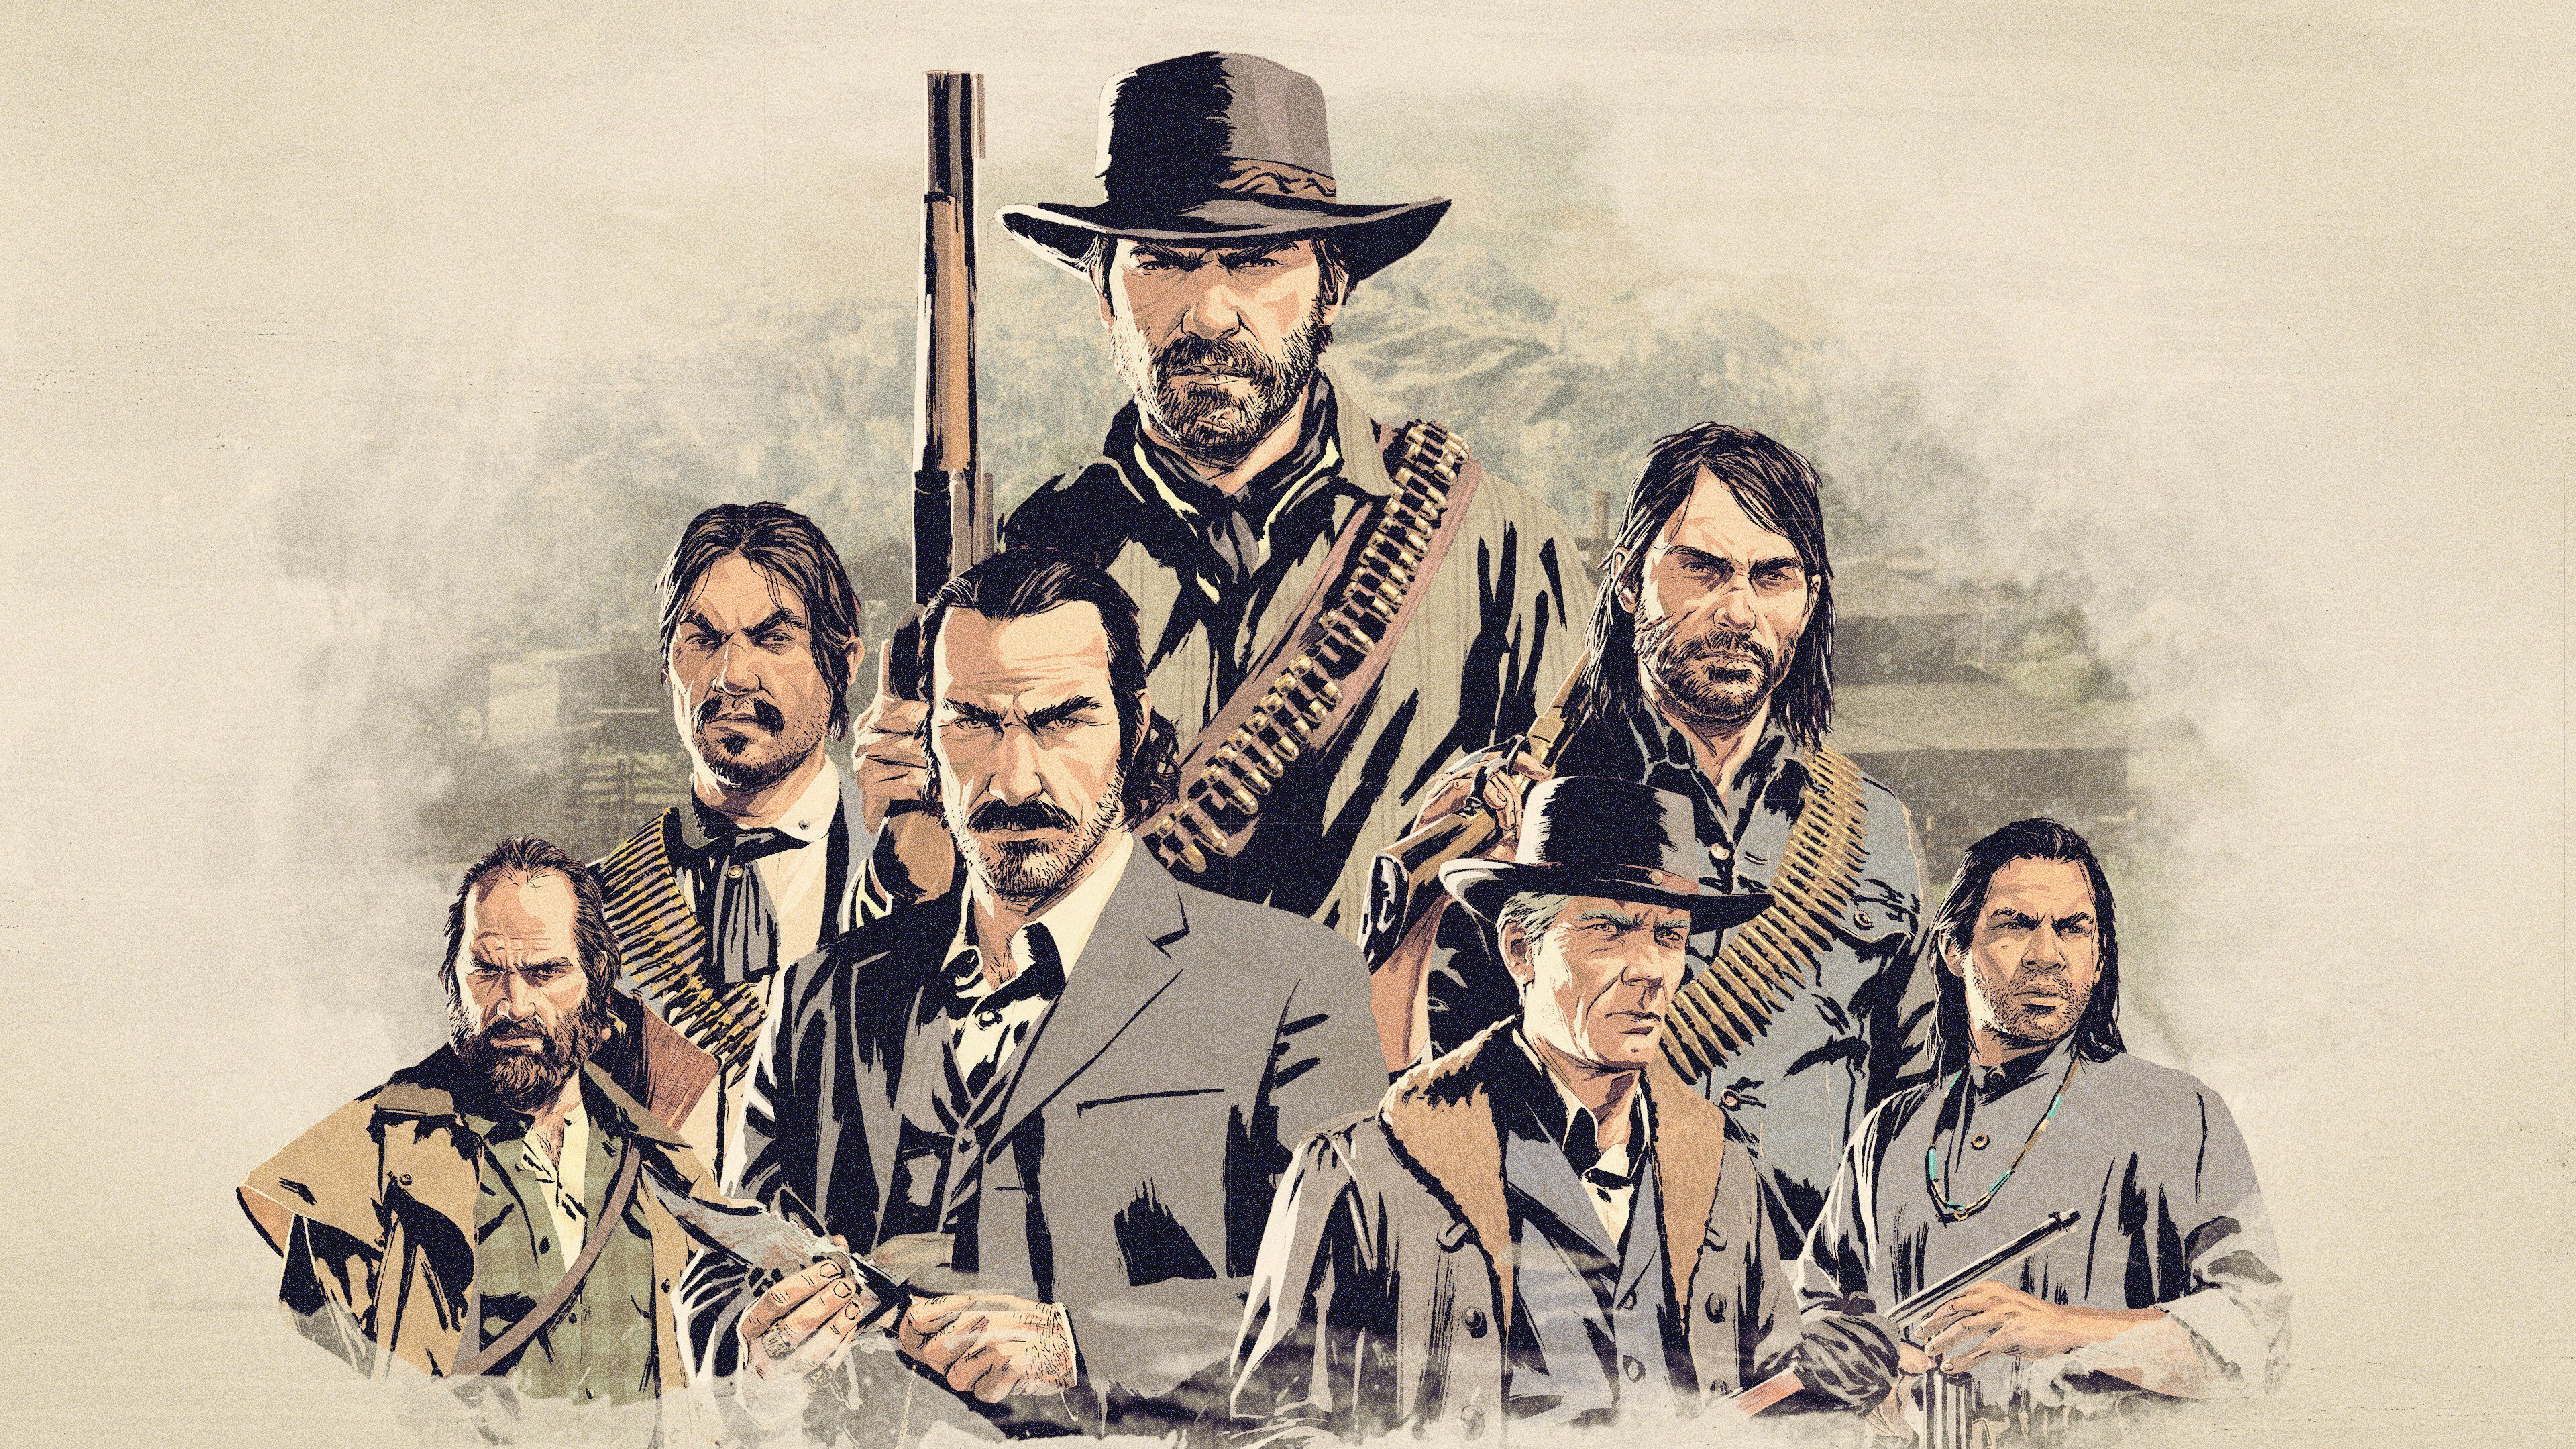 Red Dead Redemption 2 Gang Videoigry Igry